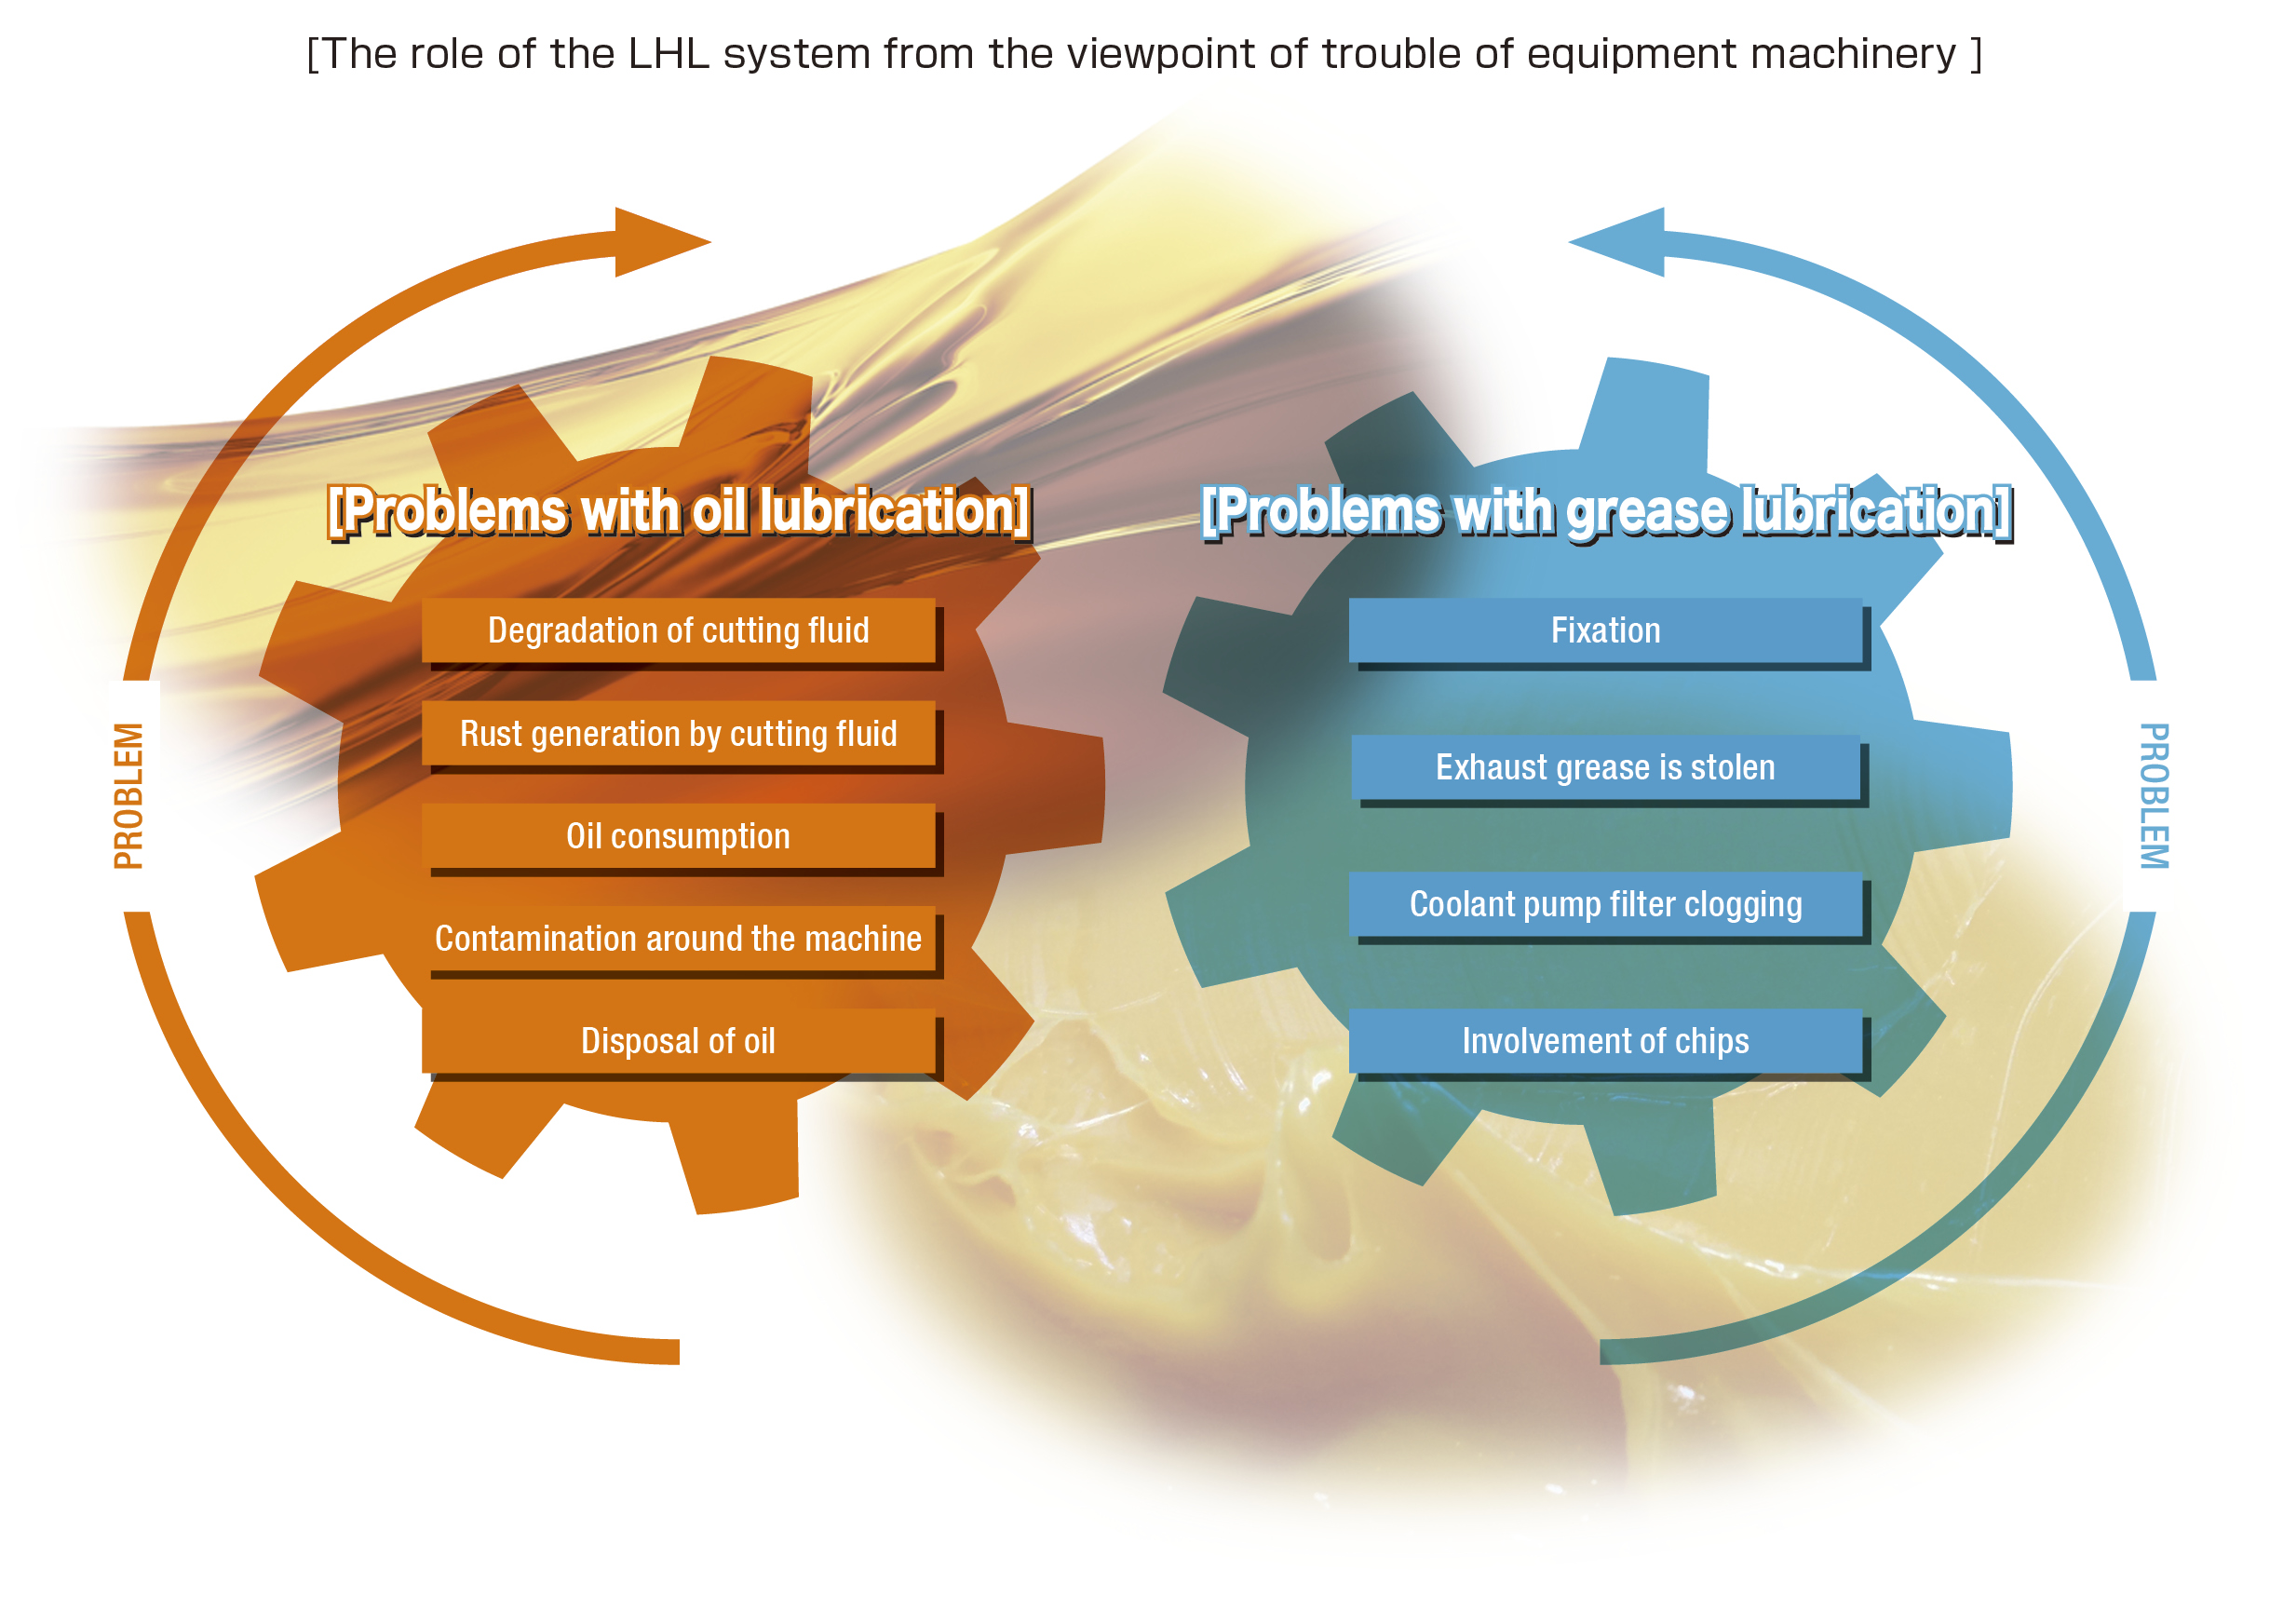 Role of the LHL system in Machinery and Equipment Problem Prevention.